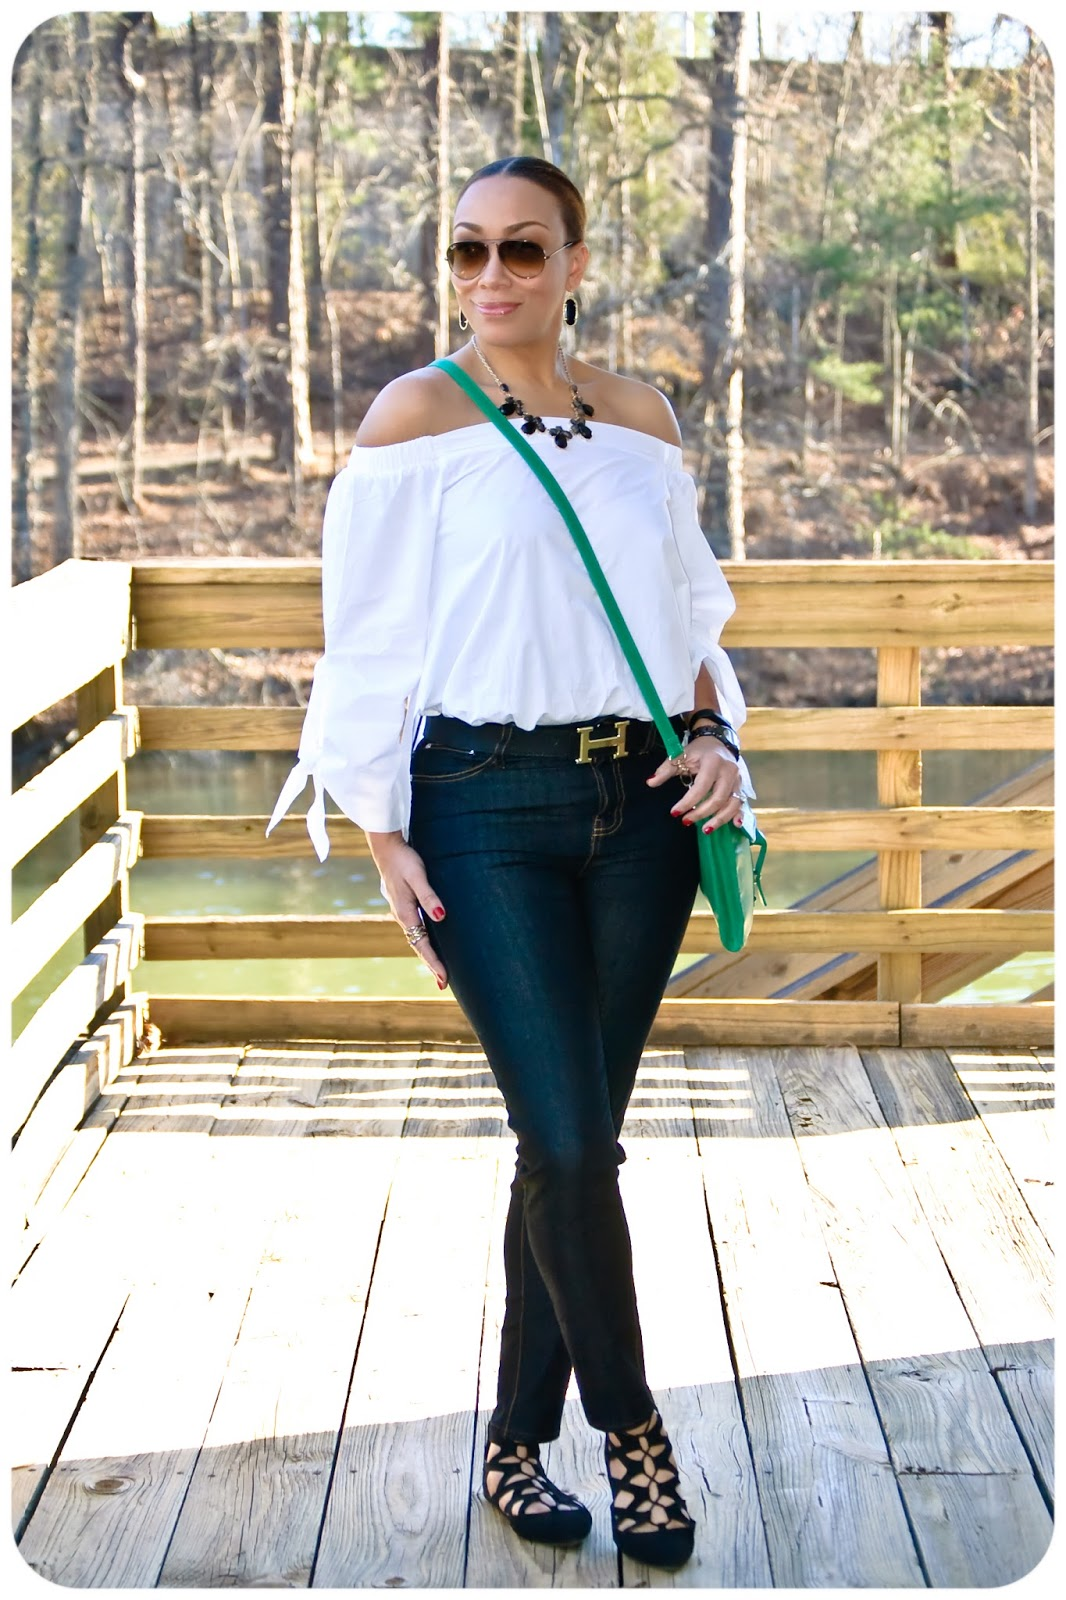 4 Ways To Be More Stylish & Fashionable - Flats - Erica Bunker DIY Style